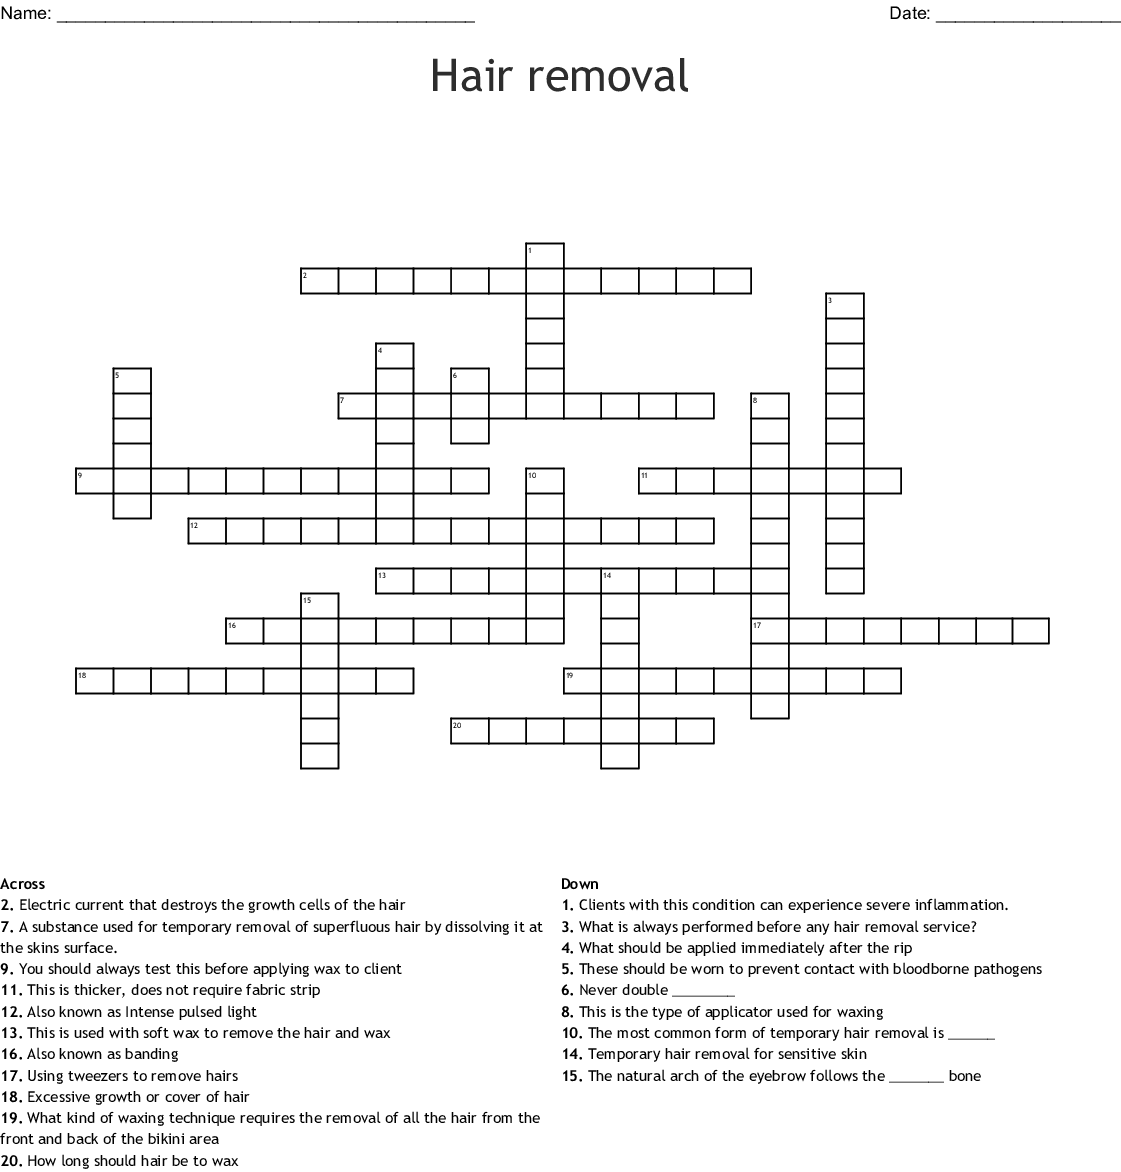 Temporary Hair Removal Word Search Wordmint